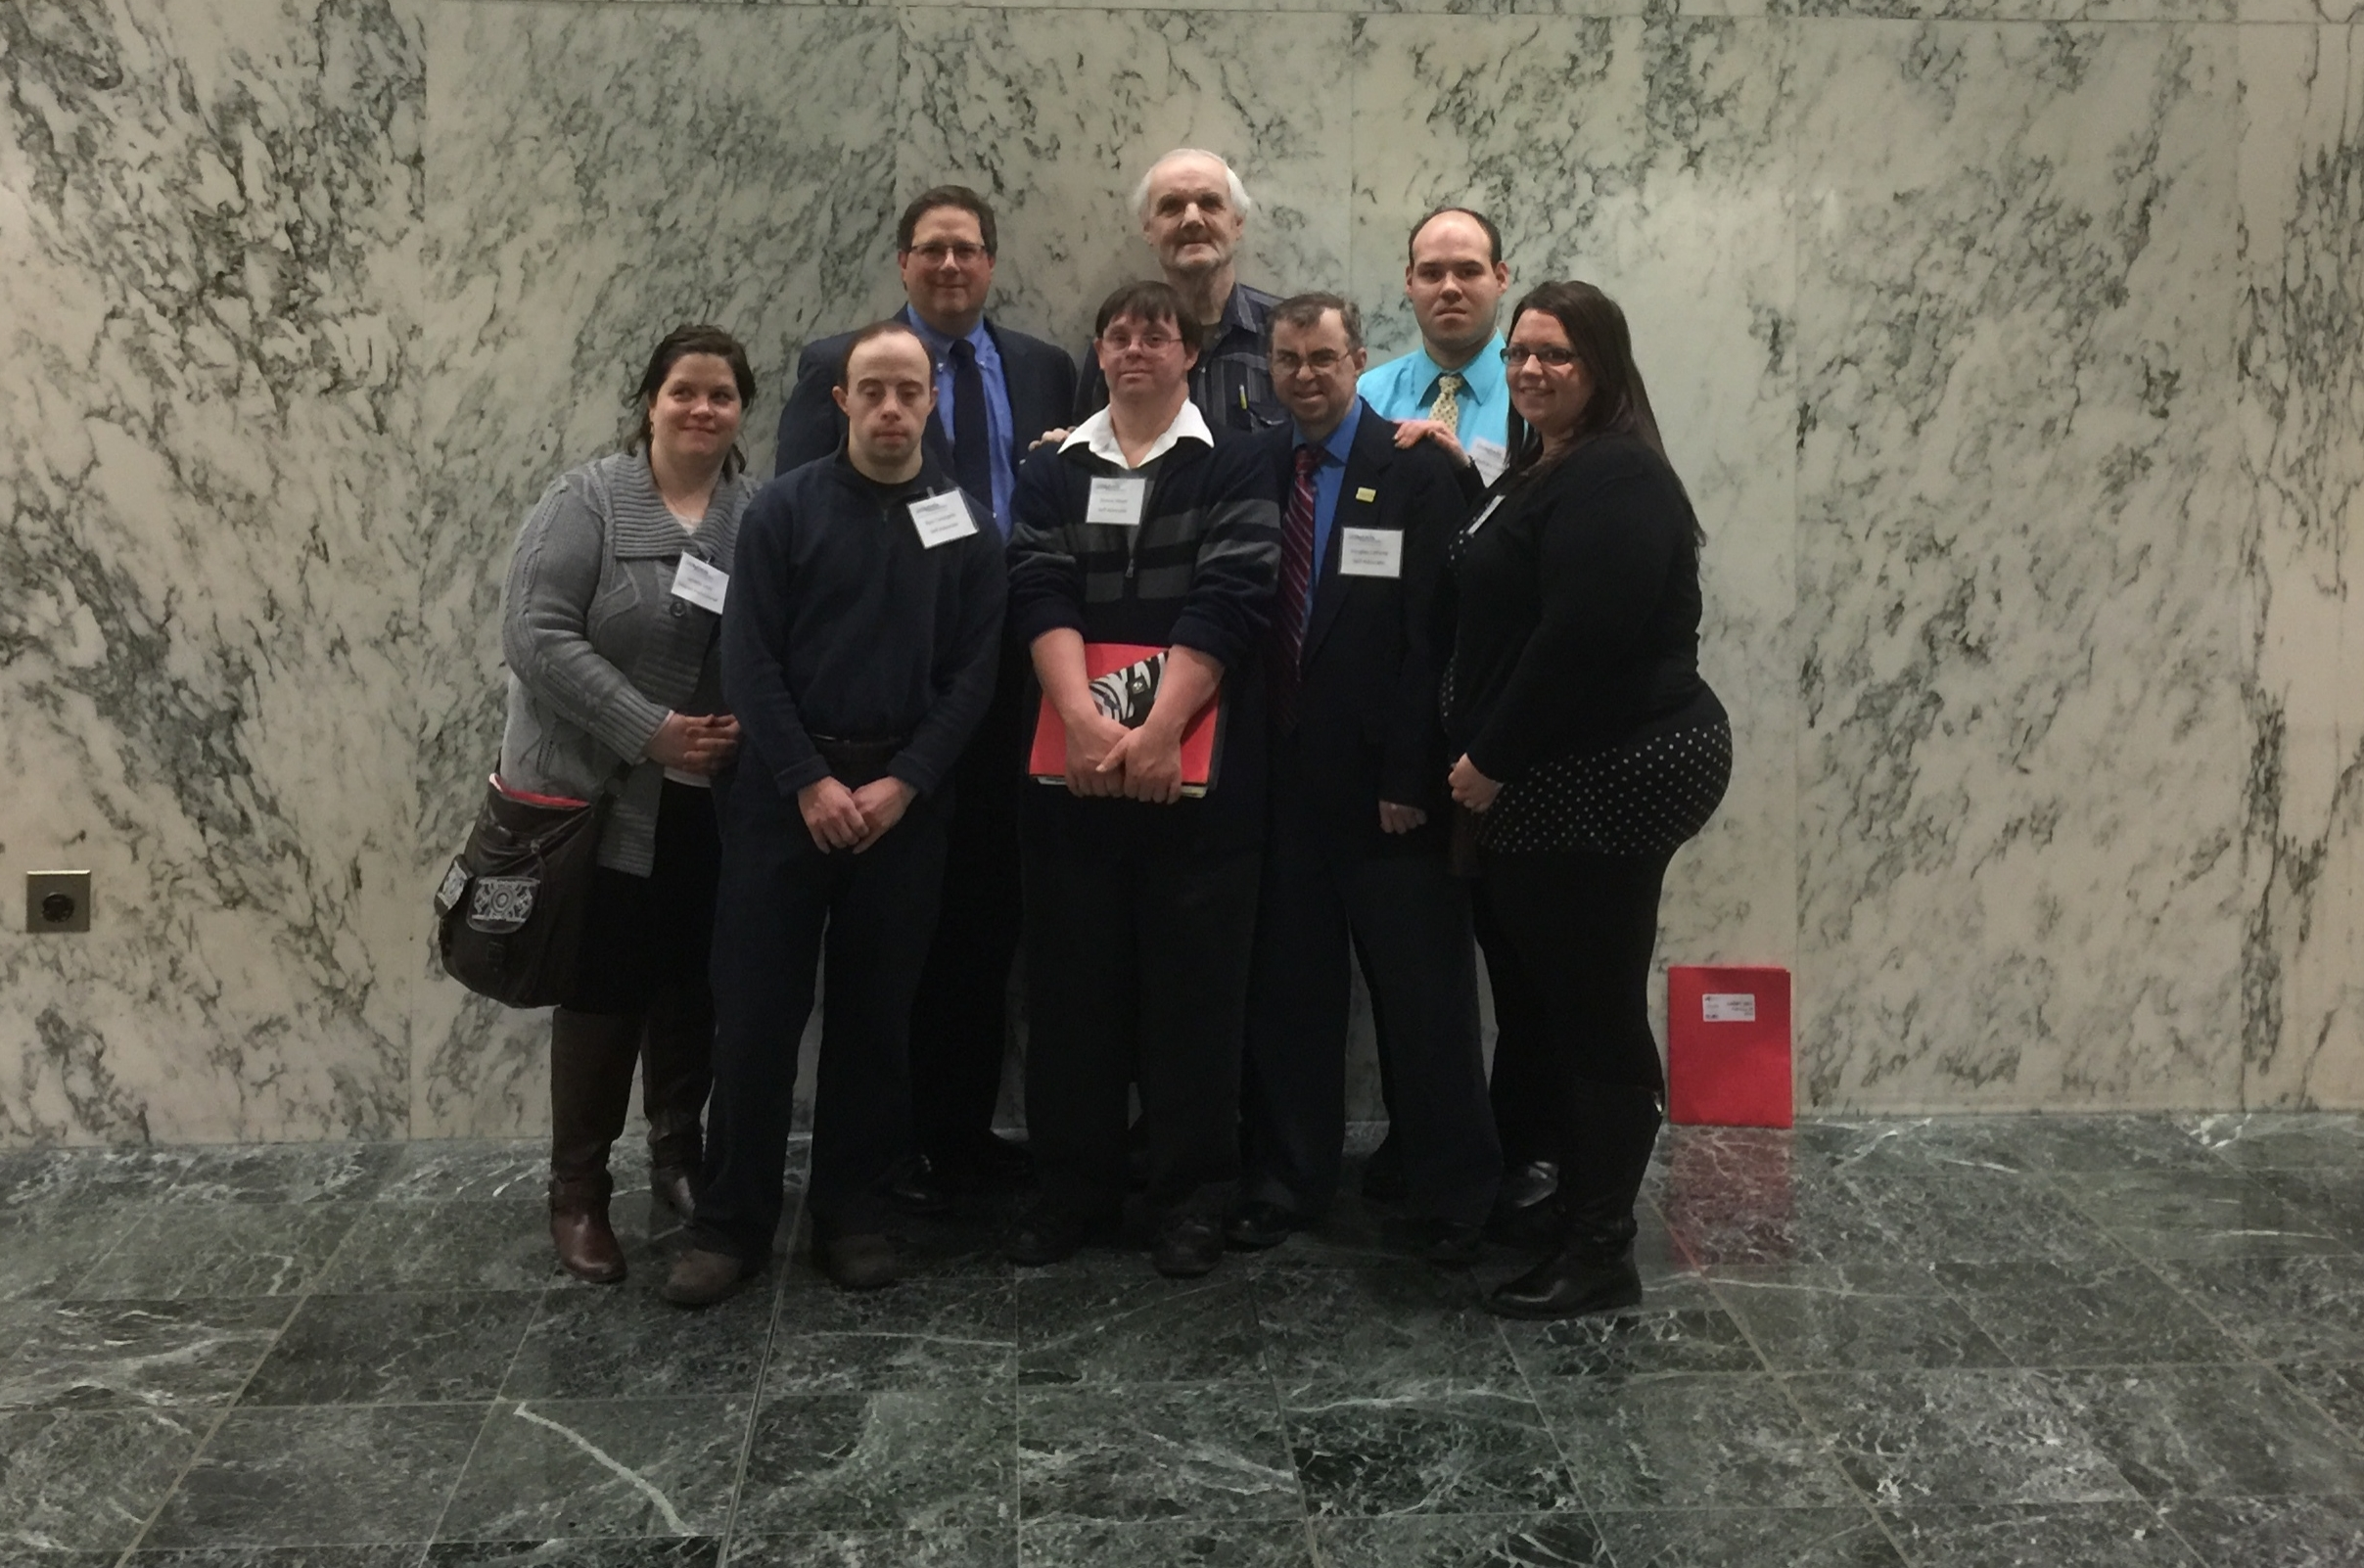 Here are our Self-Advocates with NYSARC Executive Director Steve Kroll.